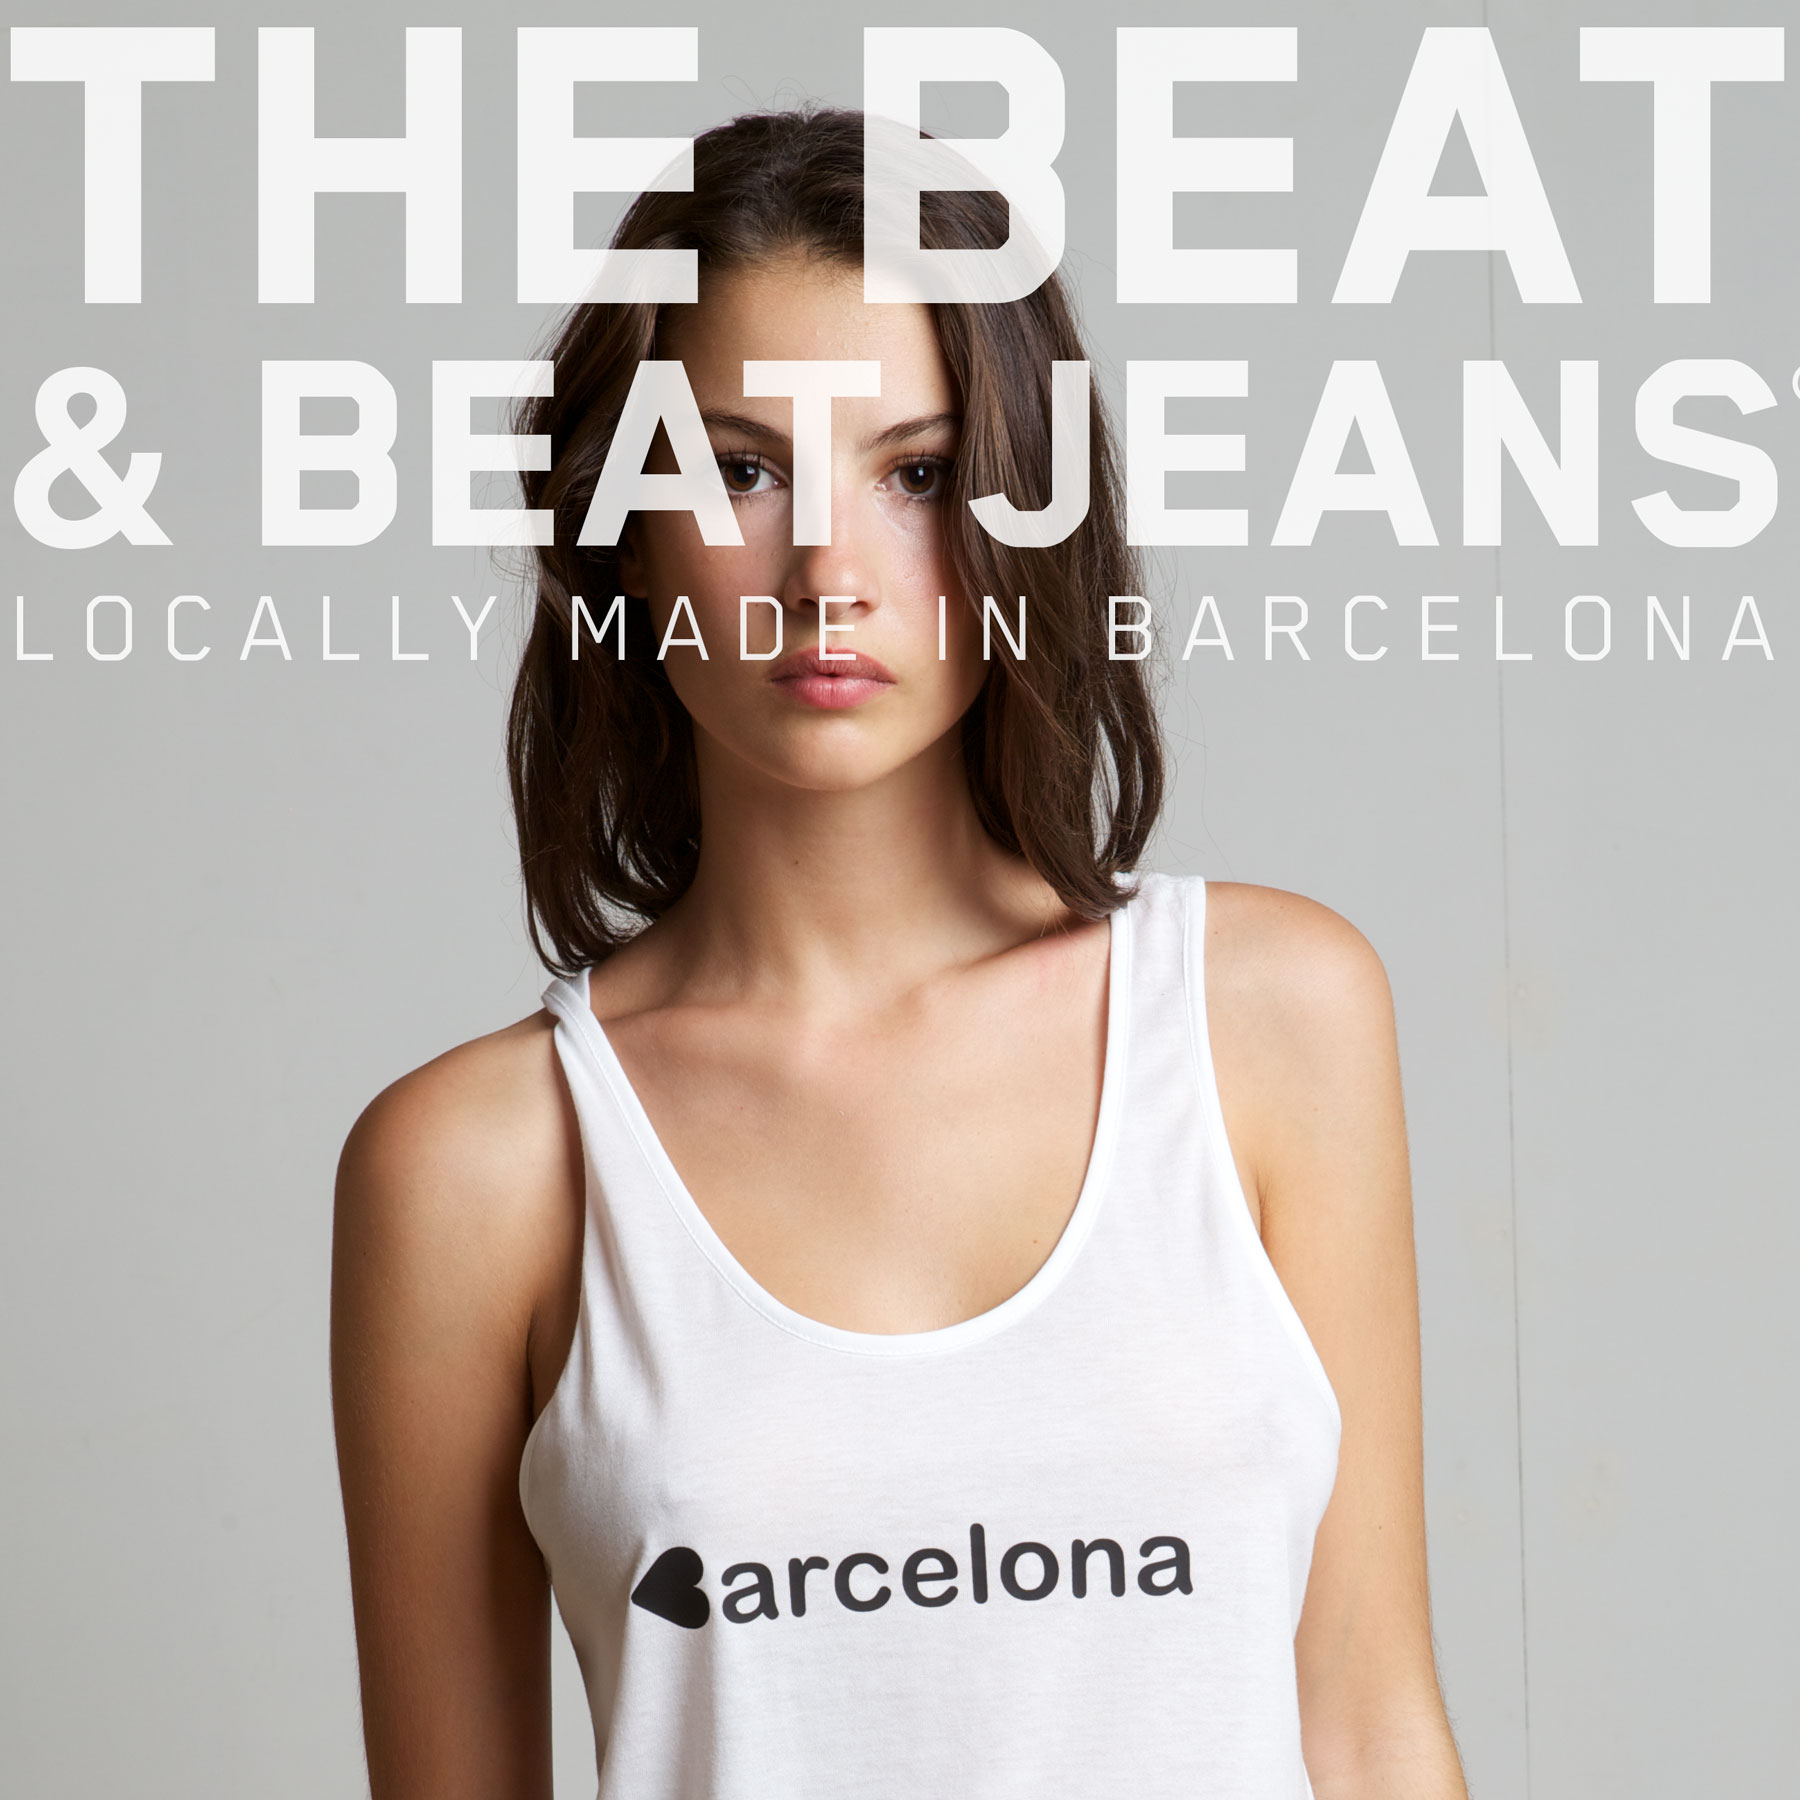 THE BEAT & BEAT JEANS Locally made in Barcelona